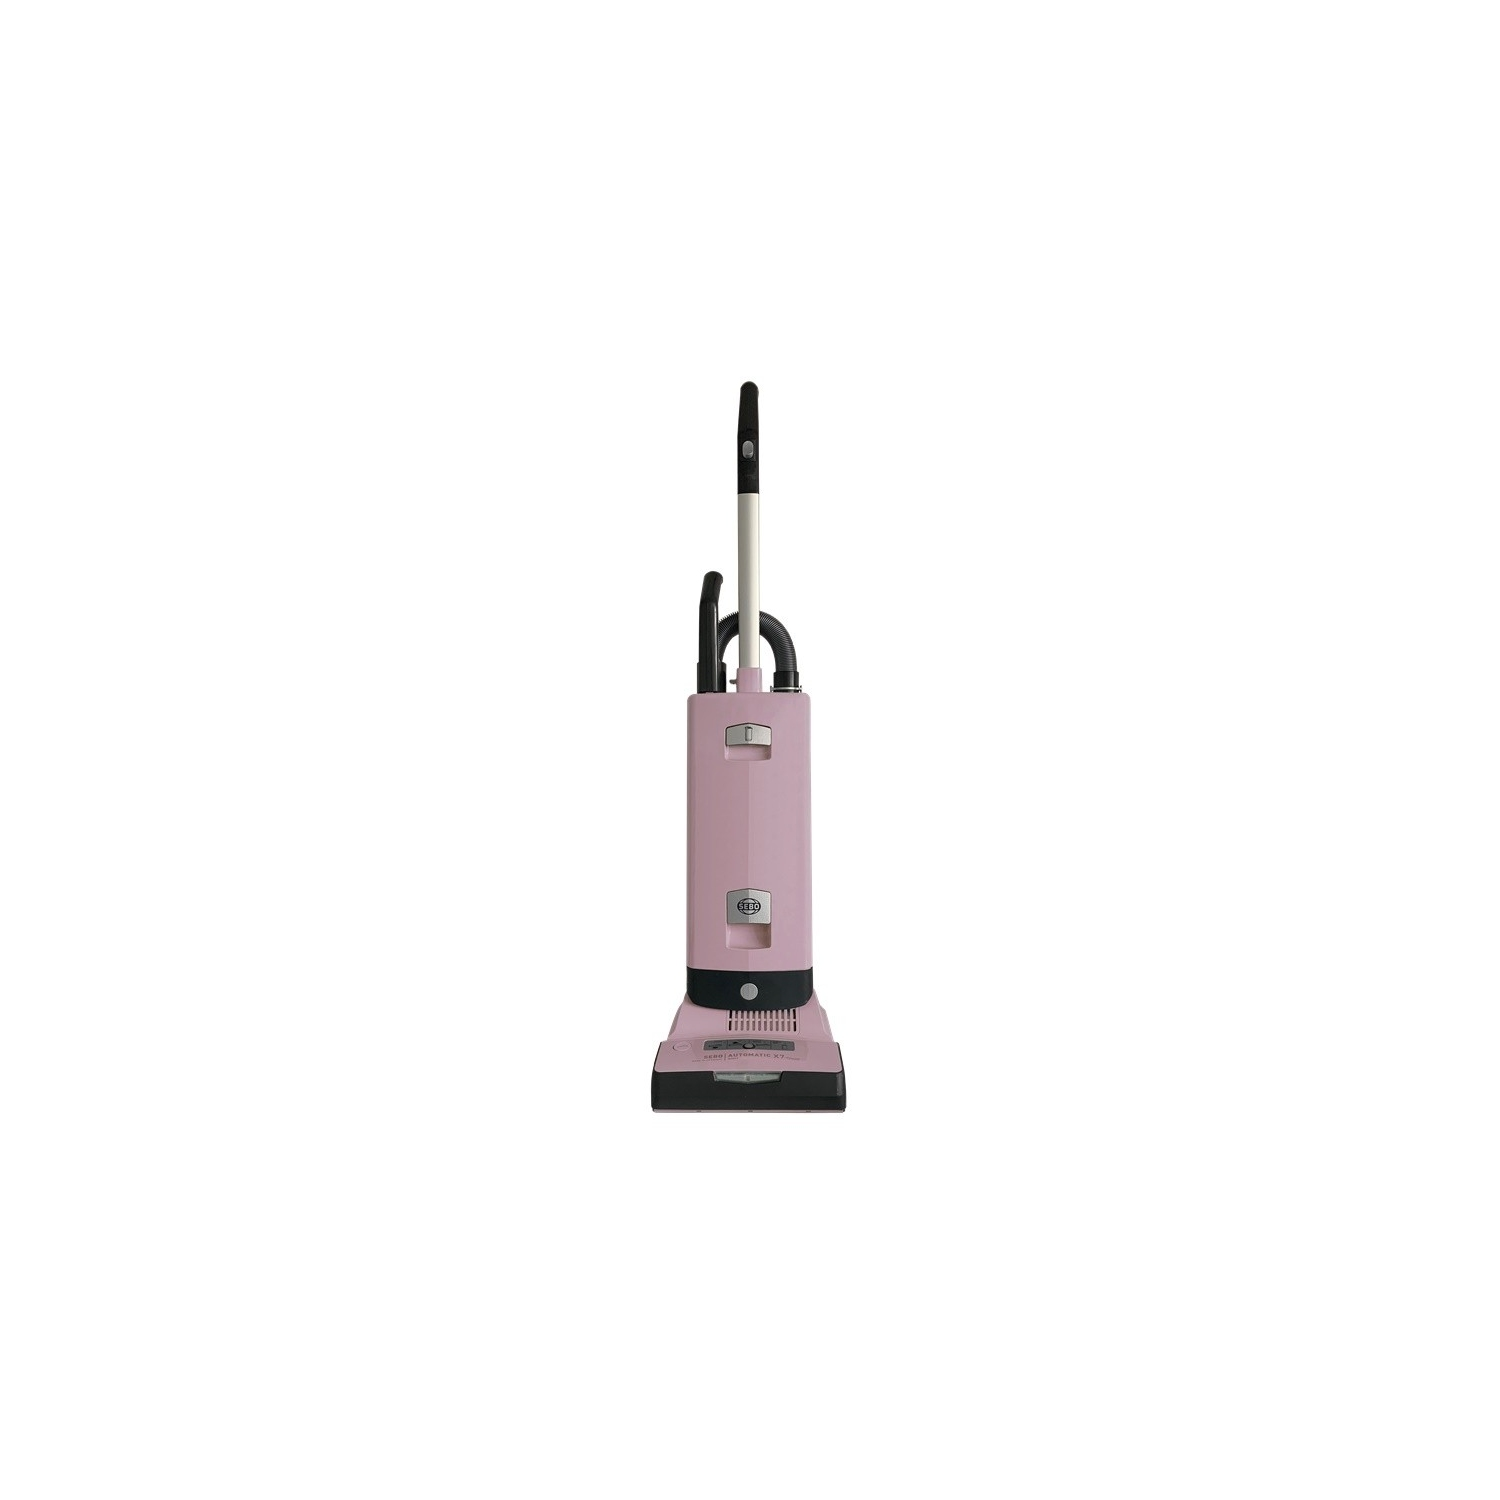 Sebo X7 Pastel Twist Pink Upright Vacuum Cleaner - 0